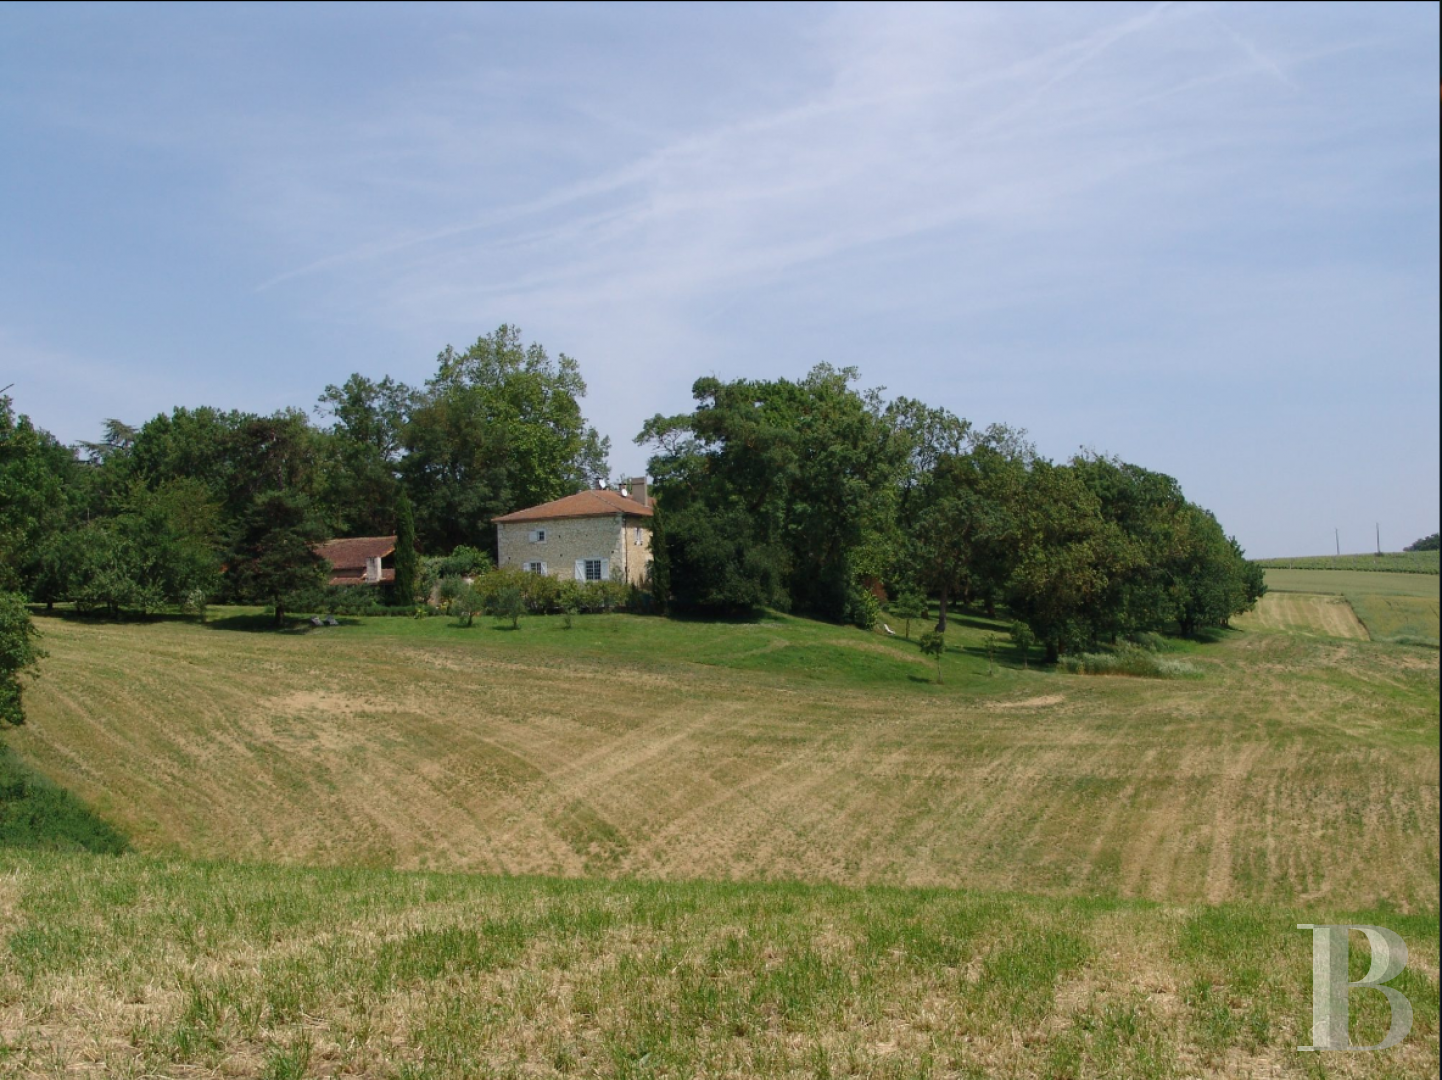 property for sale France midi pyrenees residences farms - 14 zoom